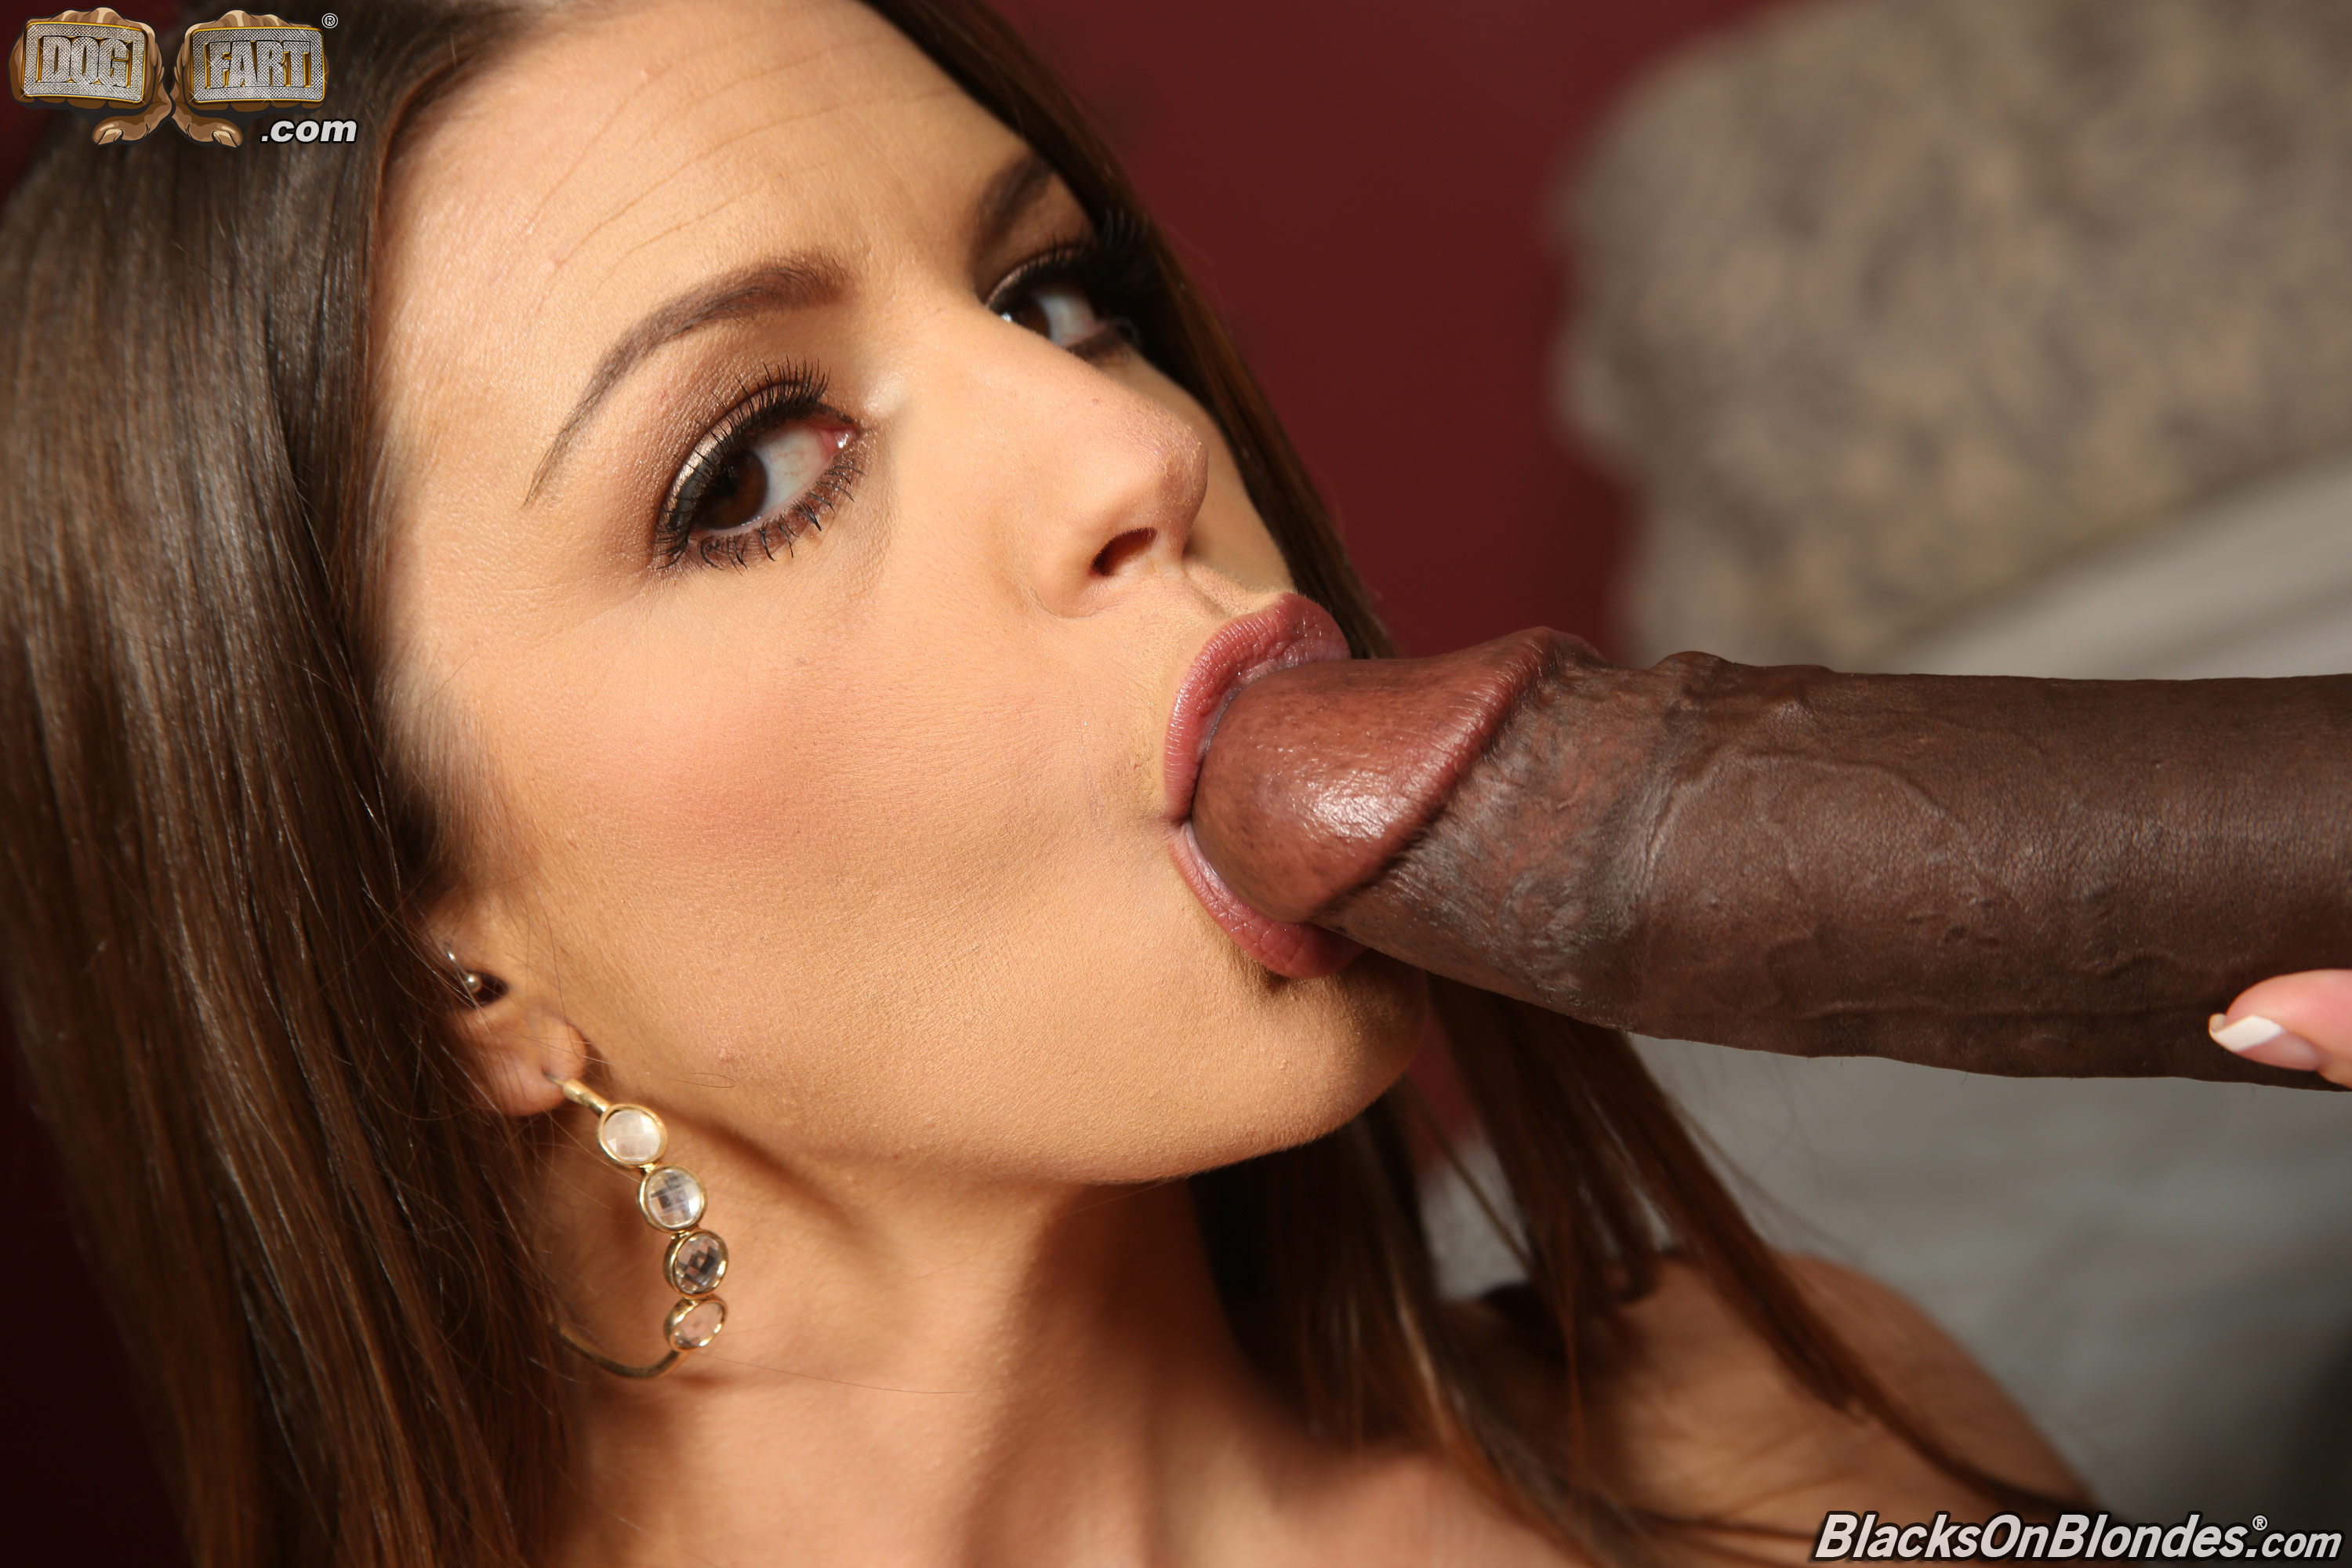 galleries blacksonblondes content brooklyn chase 4 pic 12